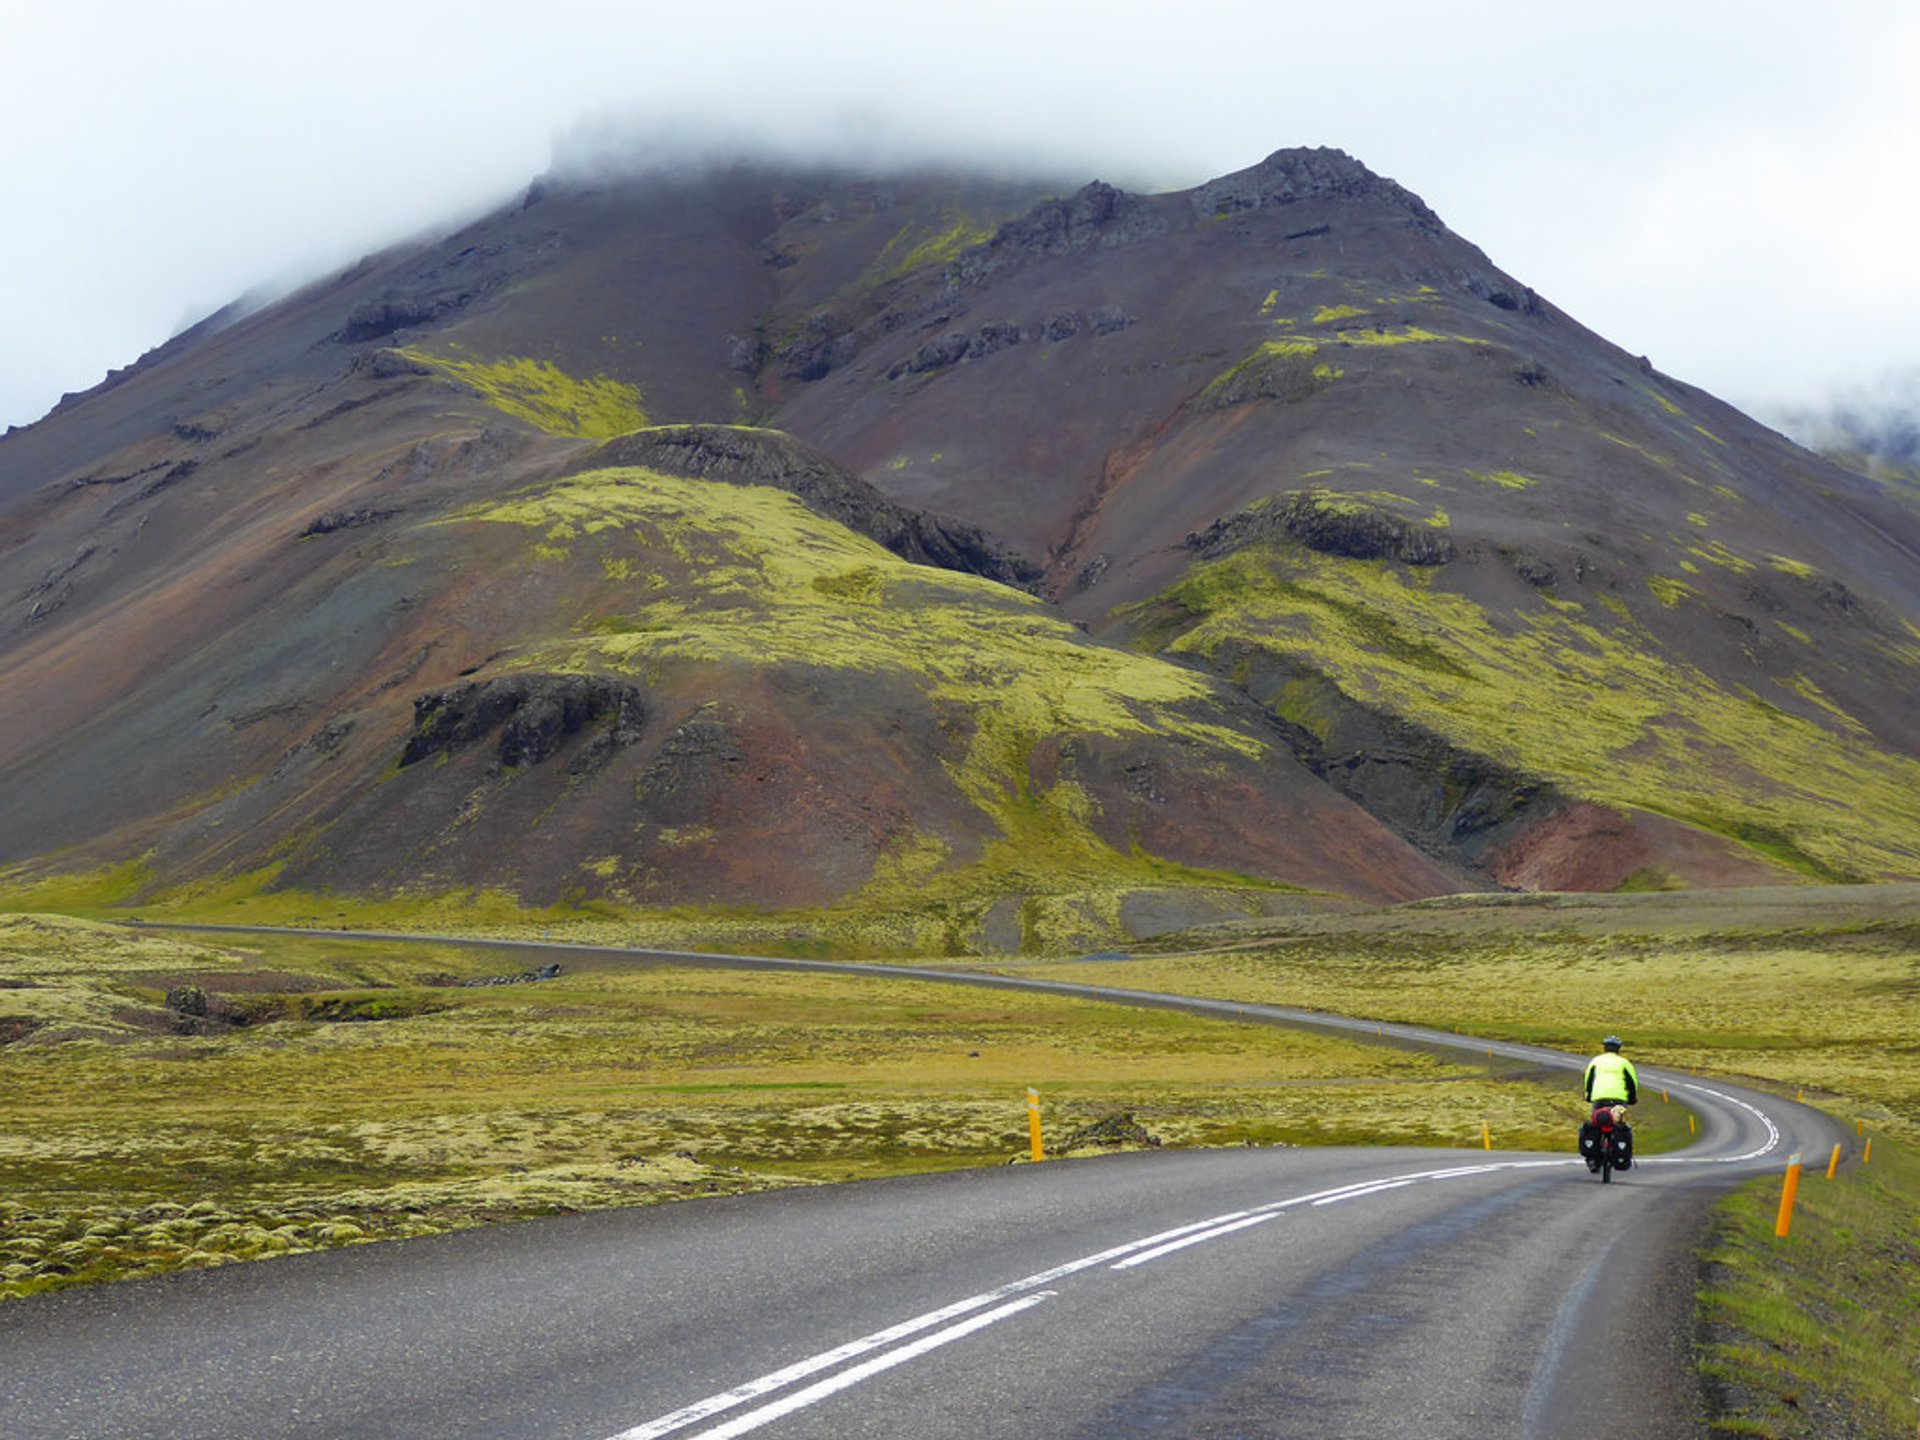 Cycling in Iceland 2020 - Best Time